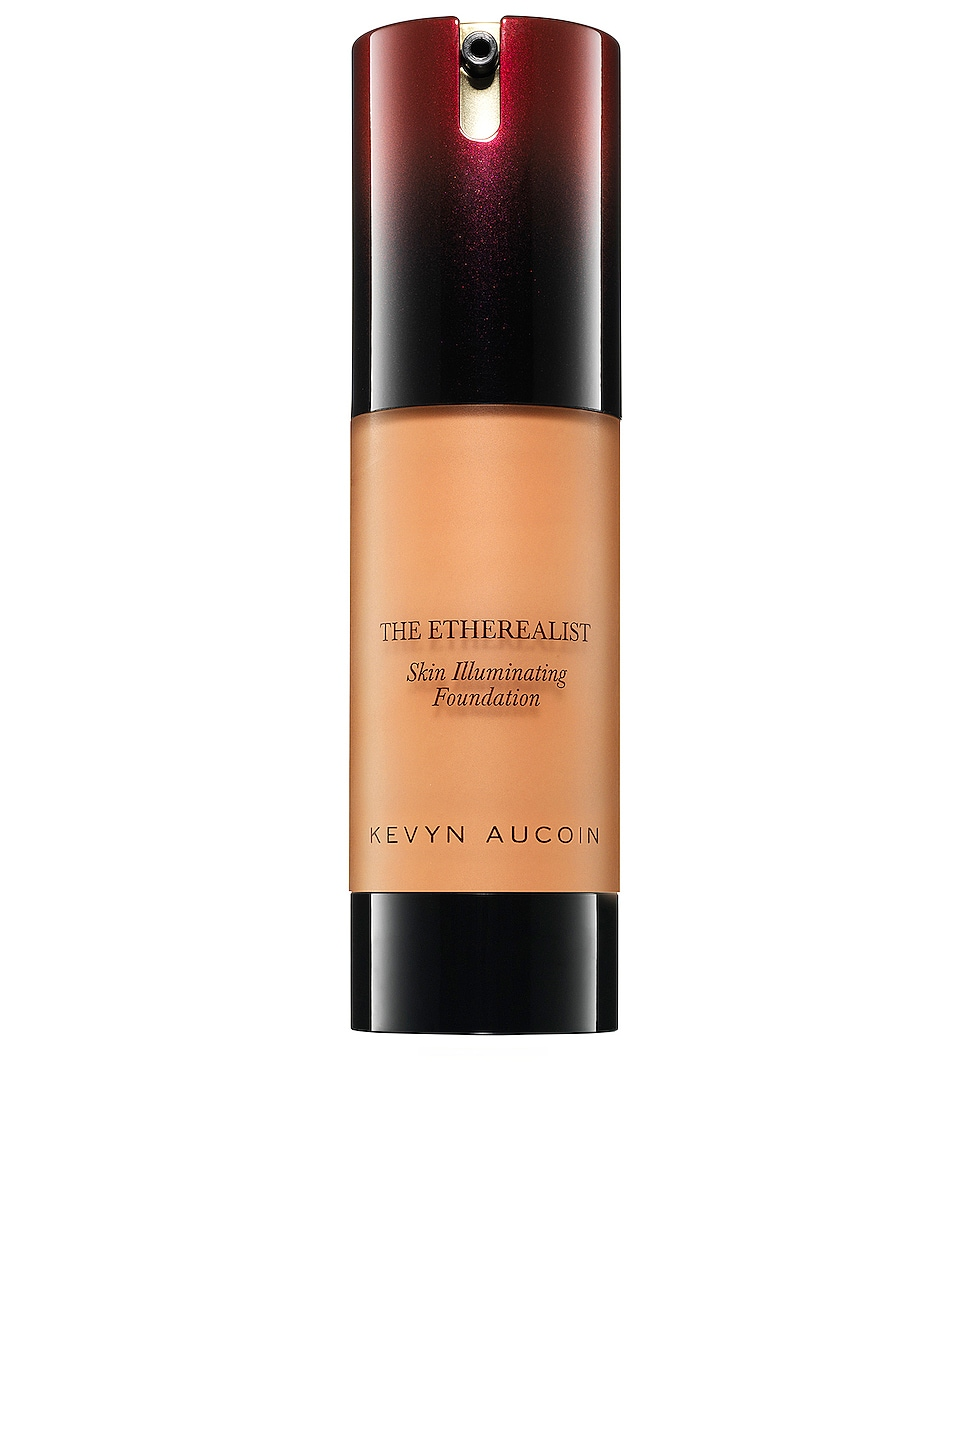 Kevyn Aucoin The Etherealist Skin Illuminating Foundation in Deep 13